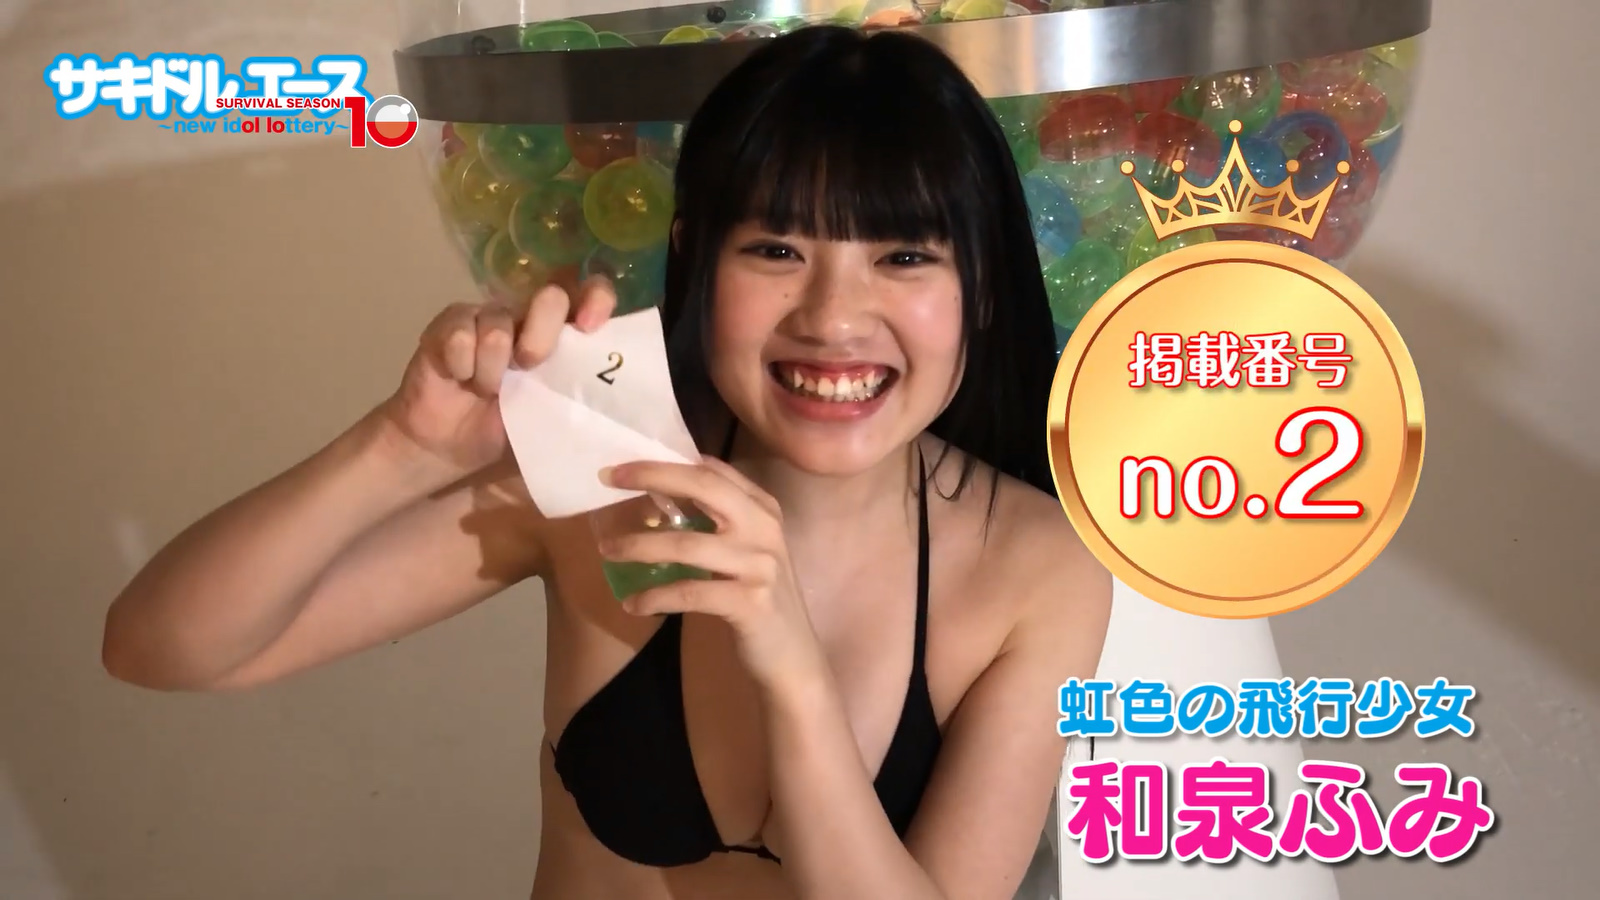 Sakidol Ace 10 Introduction Movie Capture of Swimsuit044